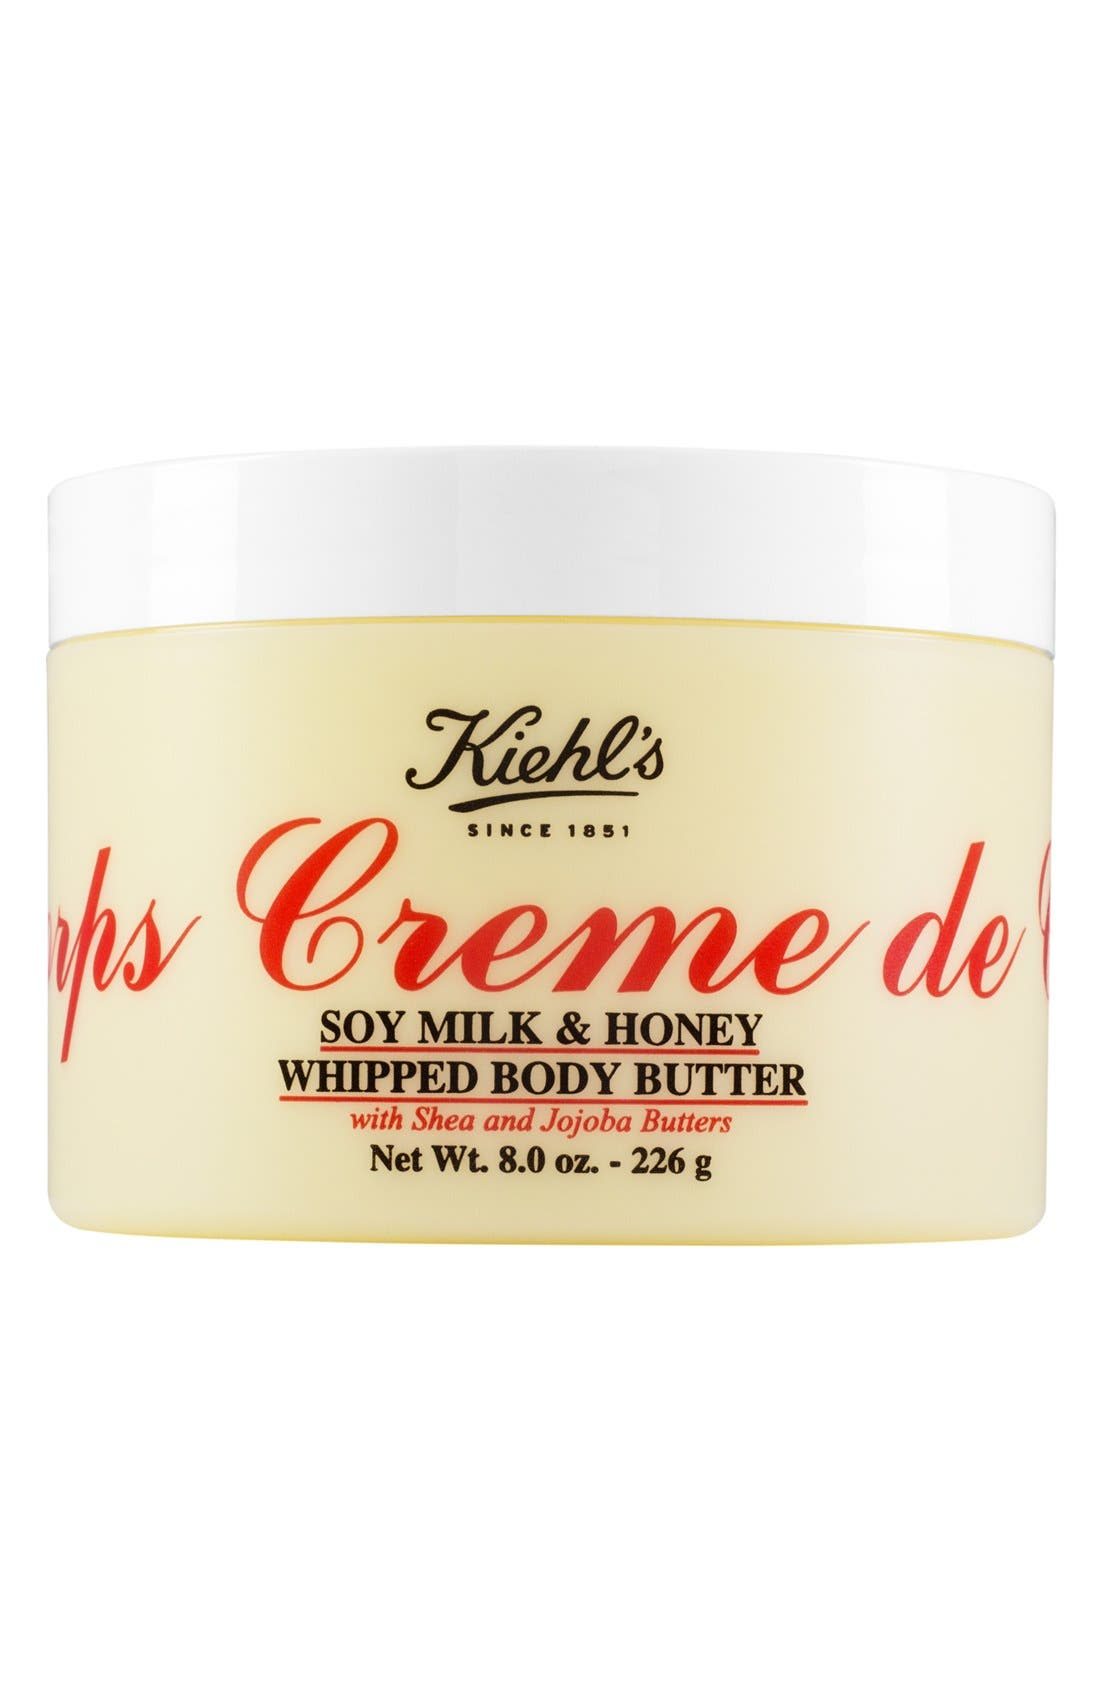 Kiehl's Since 1851 'Creme de Corps' Soy Milk & Honey Whipped Body Butter